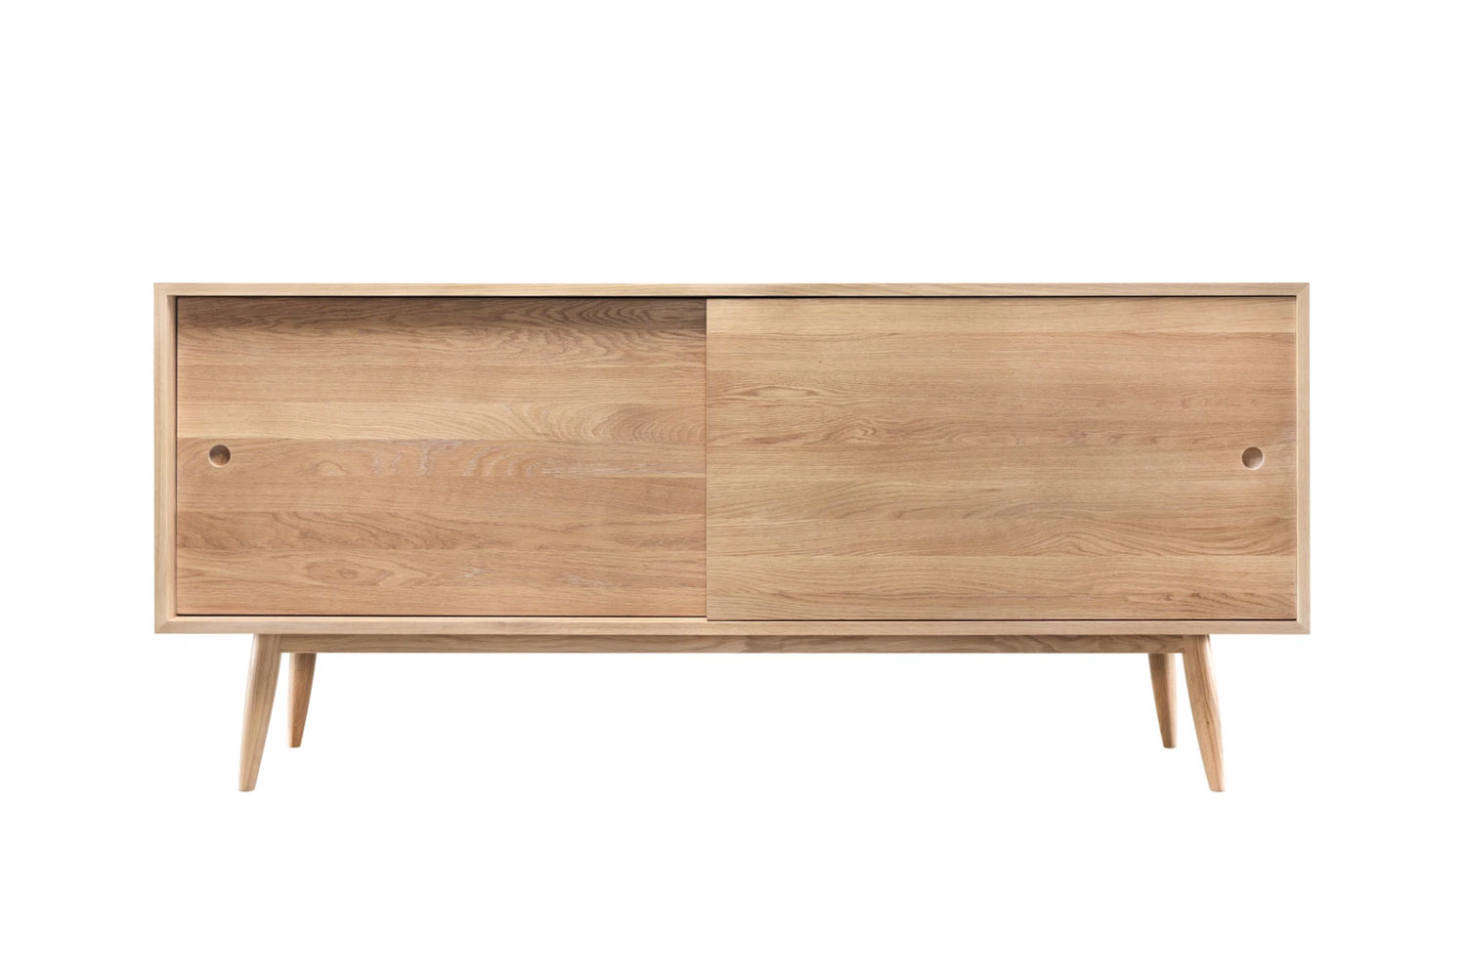 The WeWood Oak Sideboard comes in oak or walnut for $5,080 at Horne.